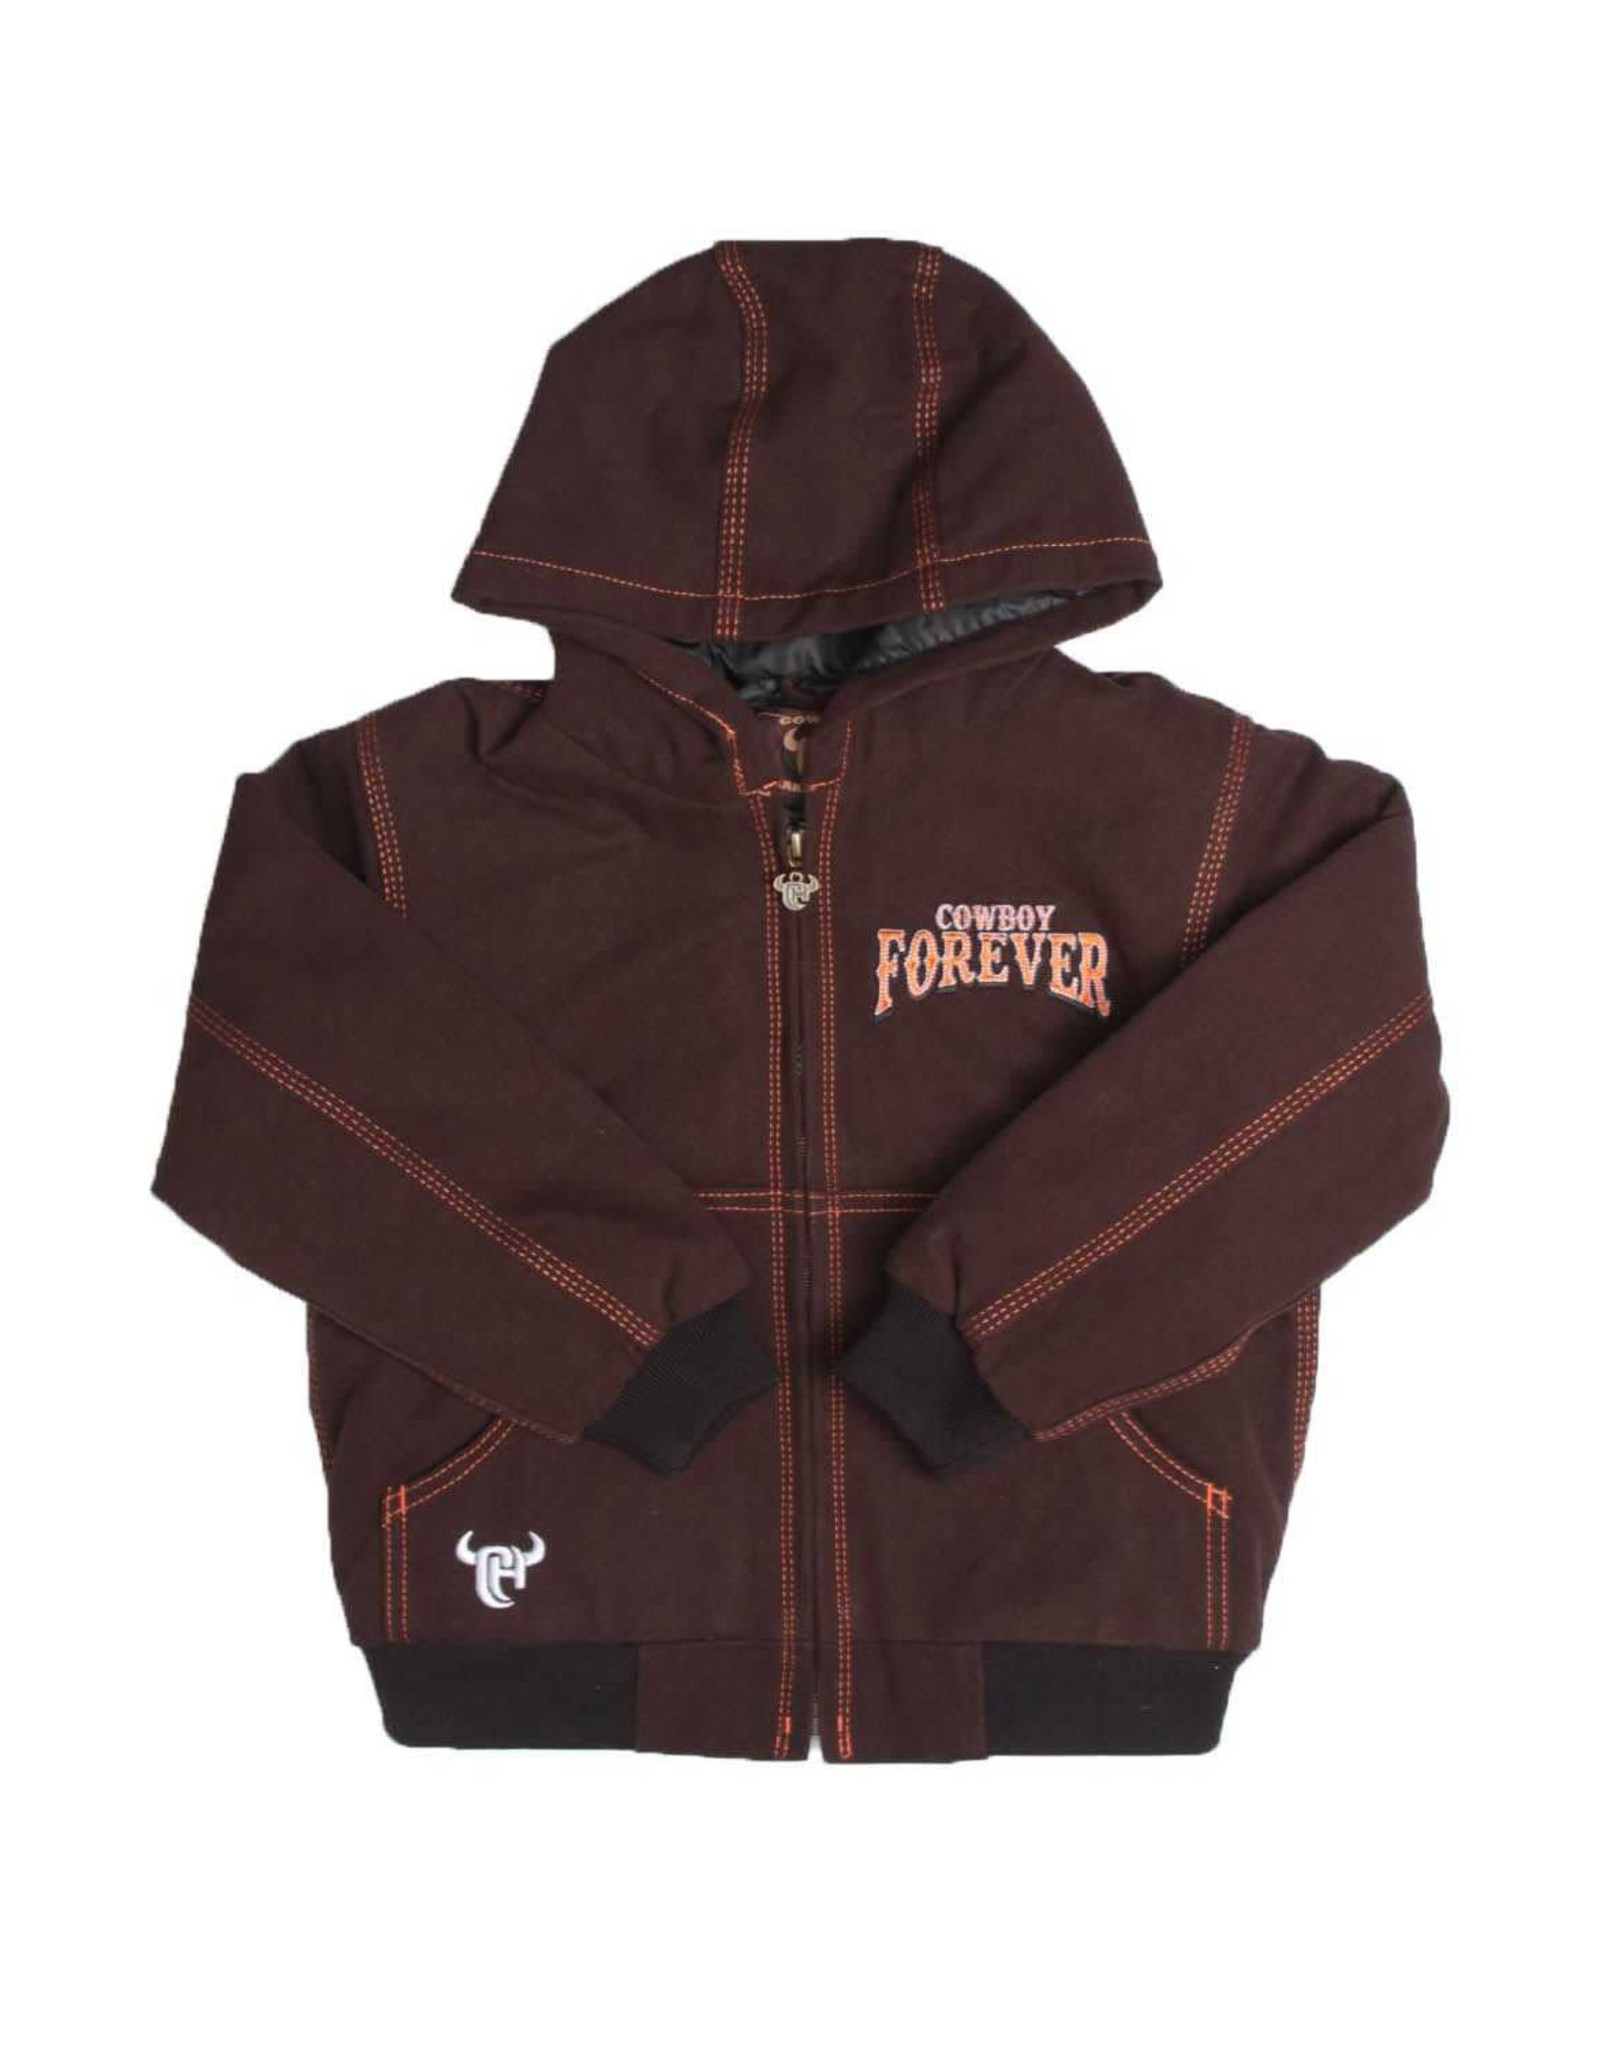 Cowboy Hardware Boys Brown Canvas Hooded Cowboy Forever Jacket